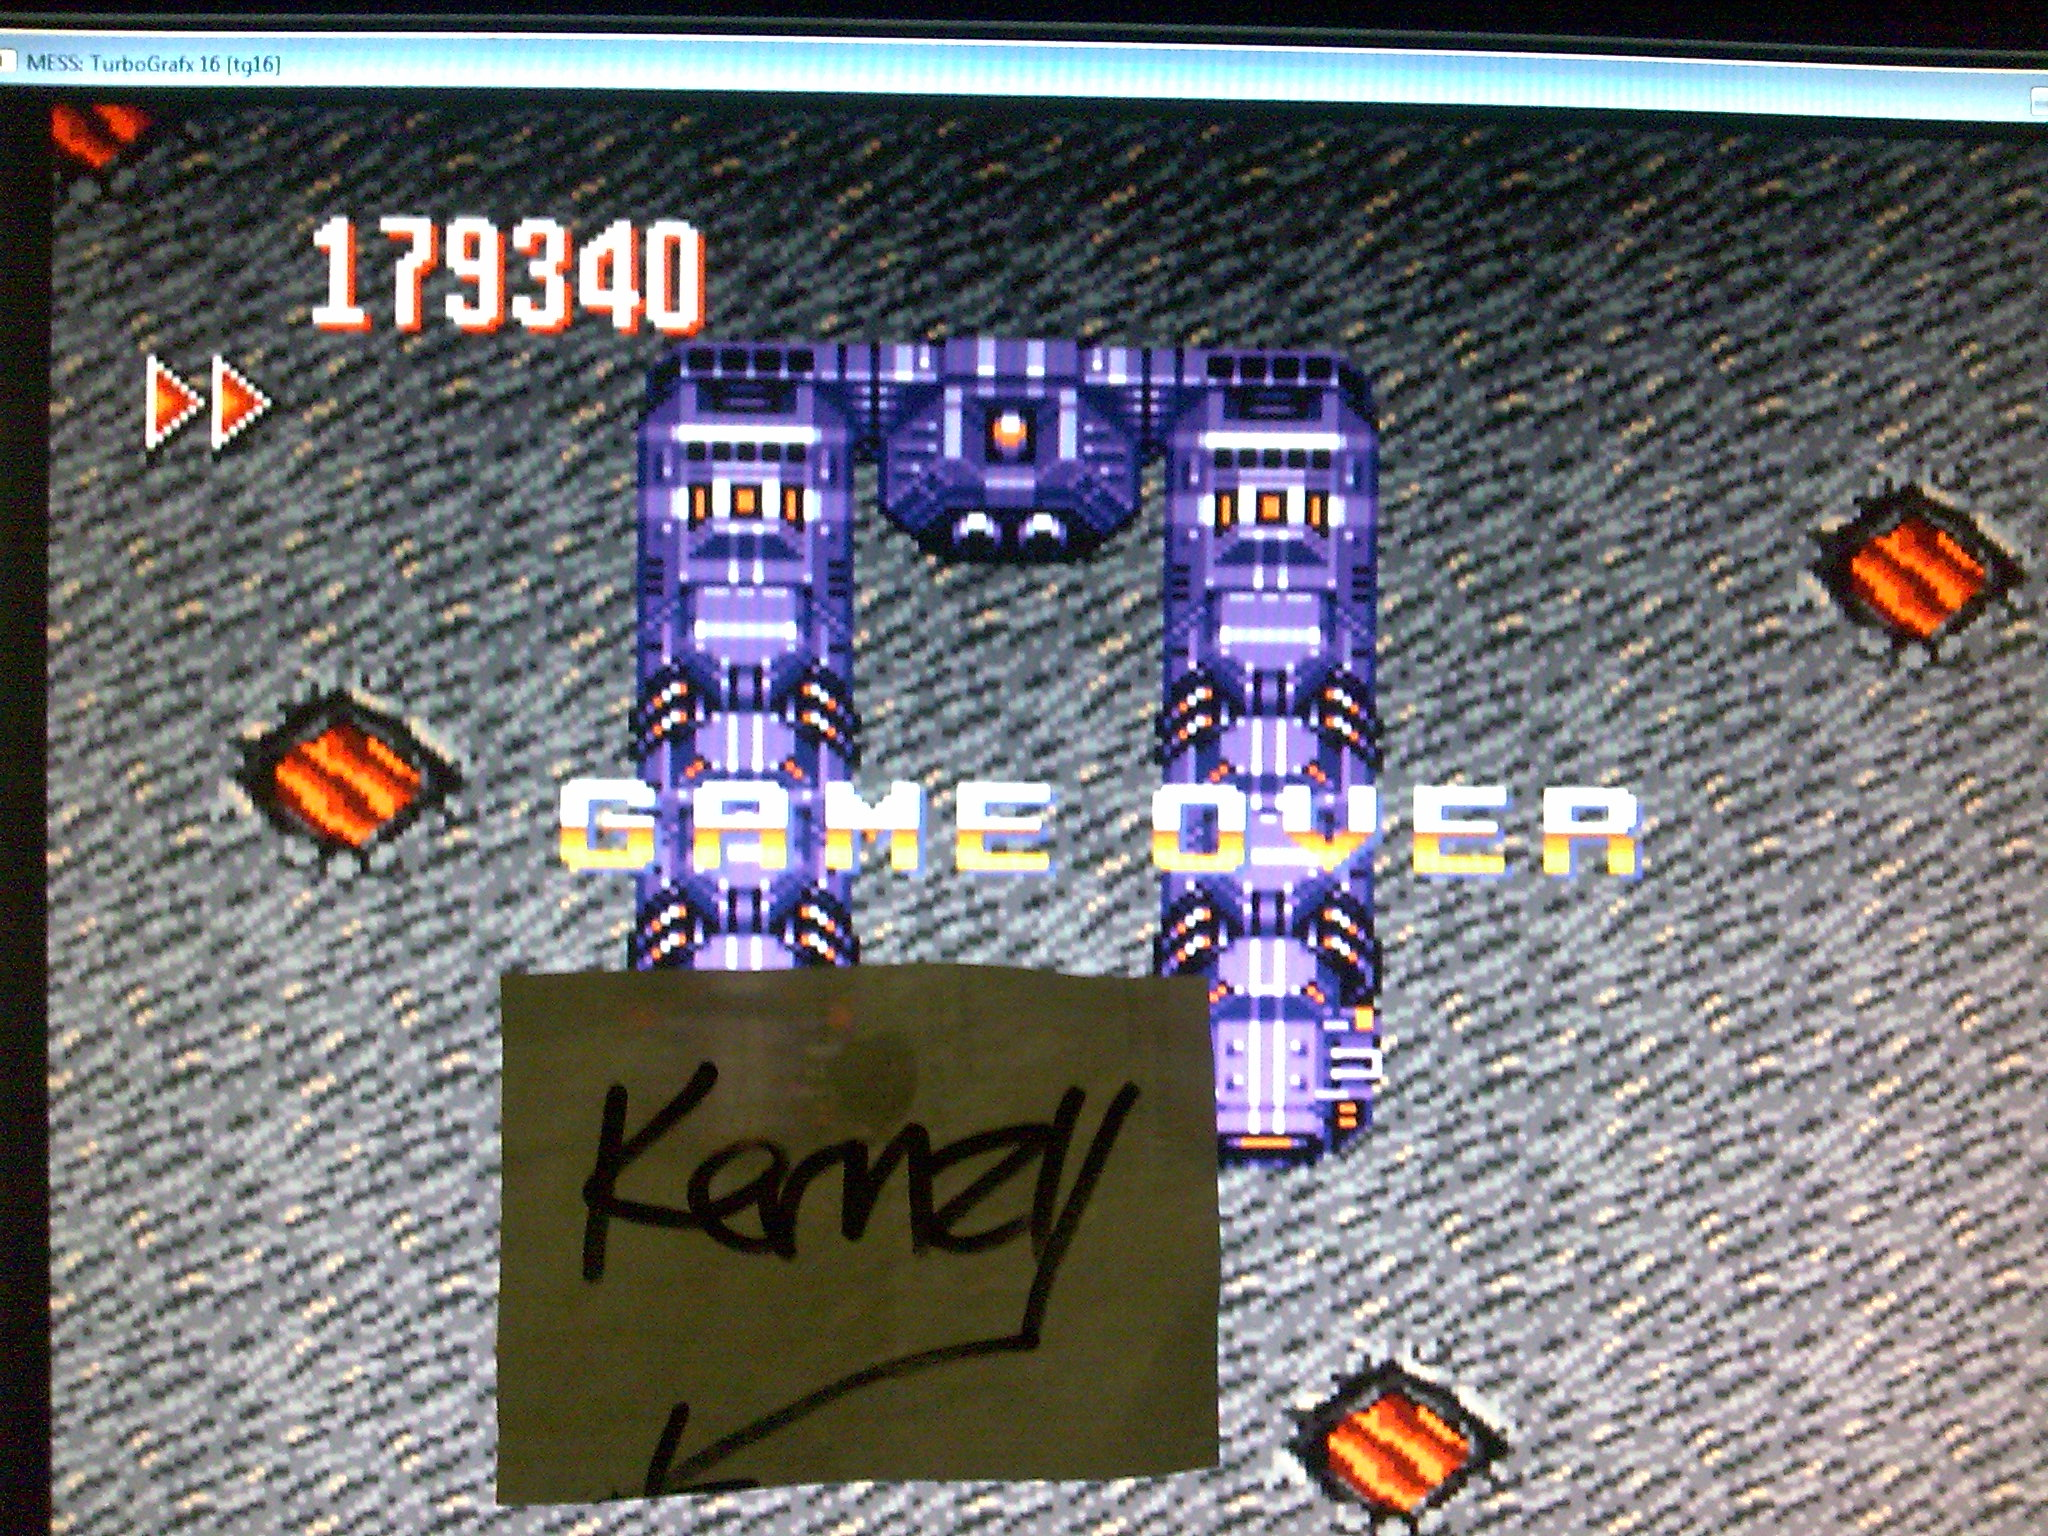 kernzy: Override (TurboGrafx-16/PC Engine Emulated) 179,340 points on 2014-10-10 12:31:48